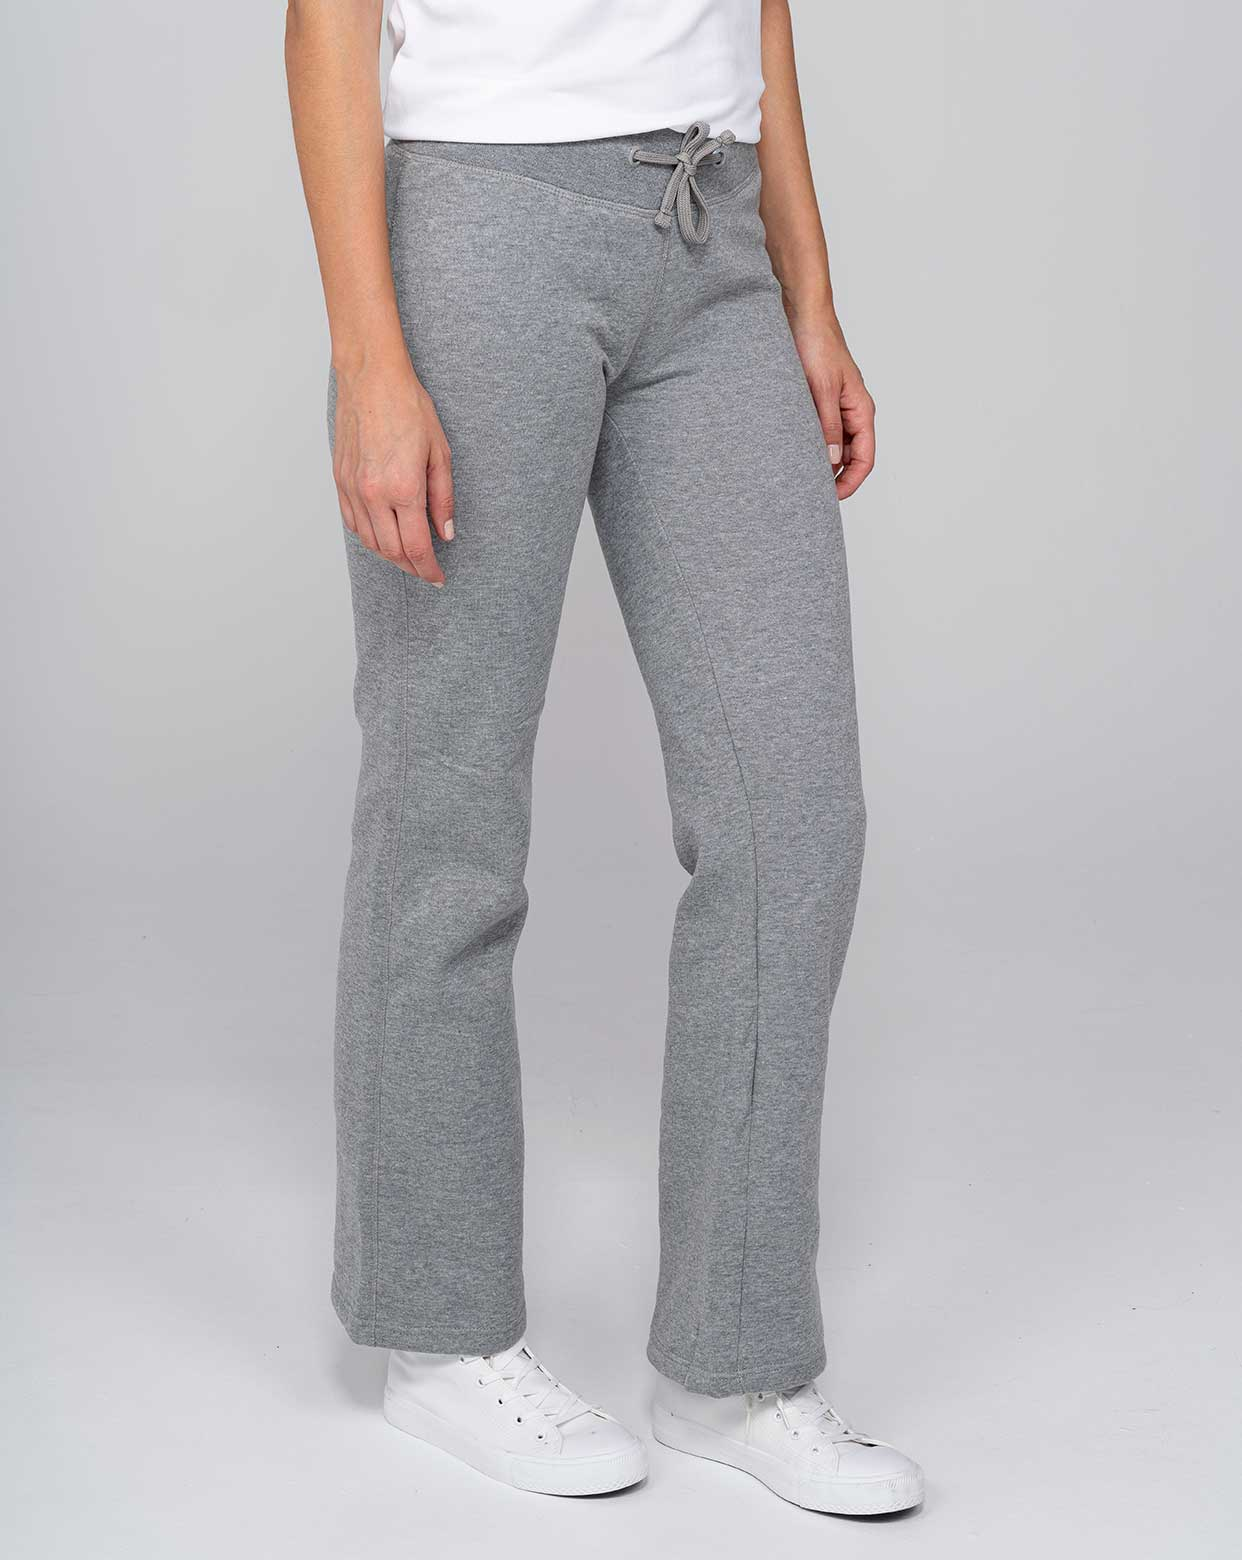 Lady Sweat Pants  - SWPANTSL